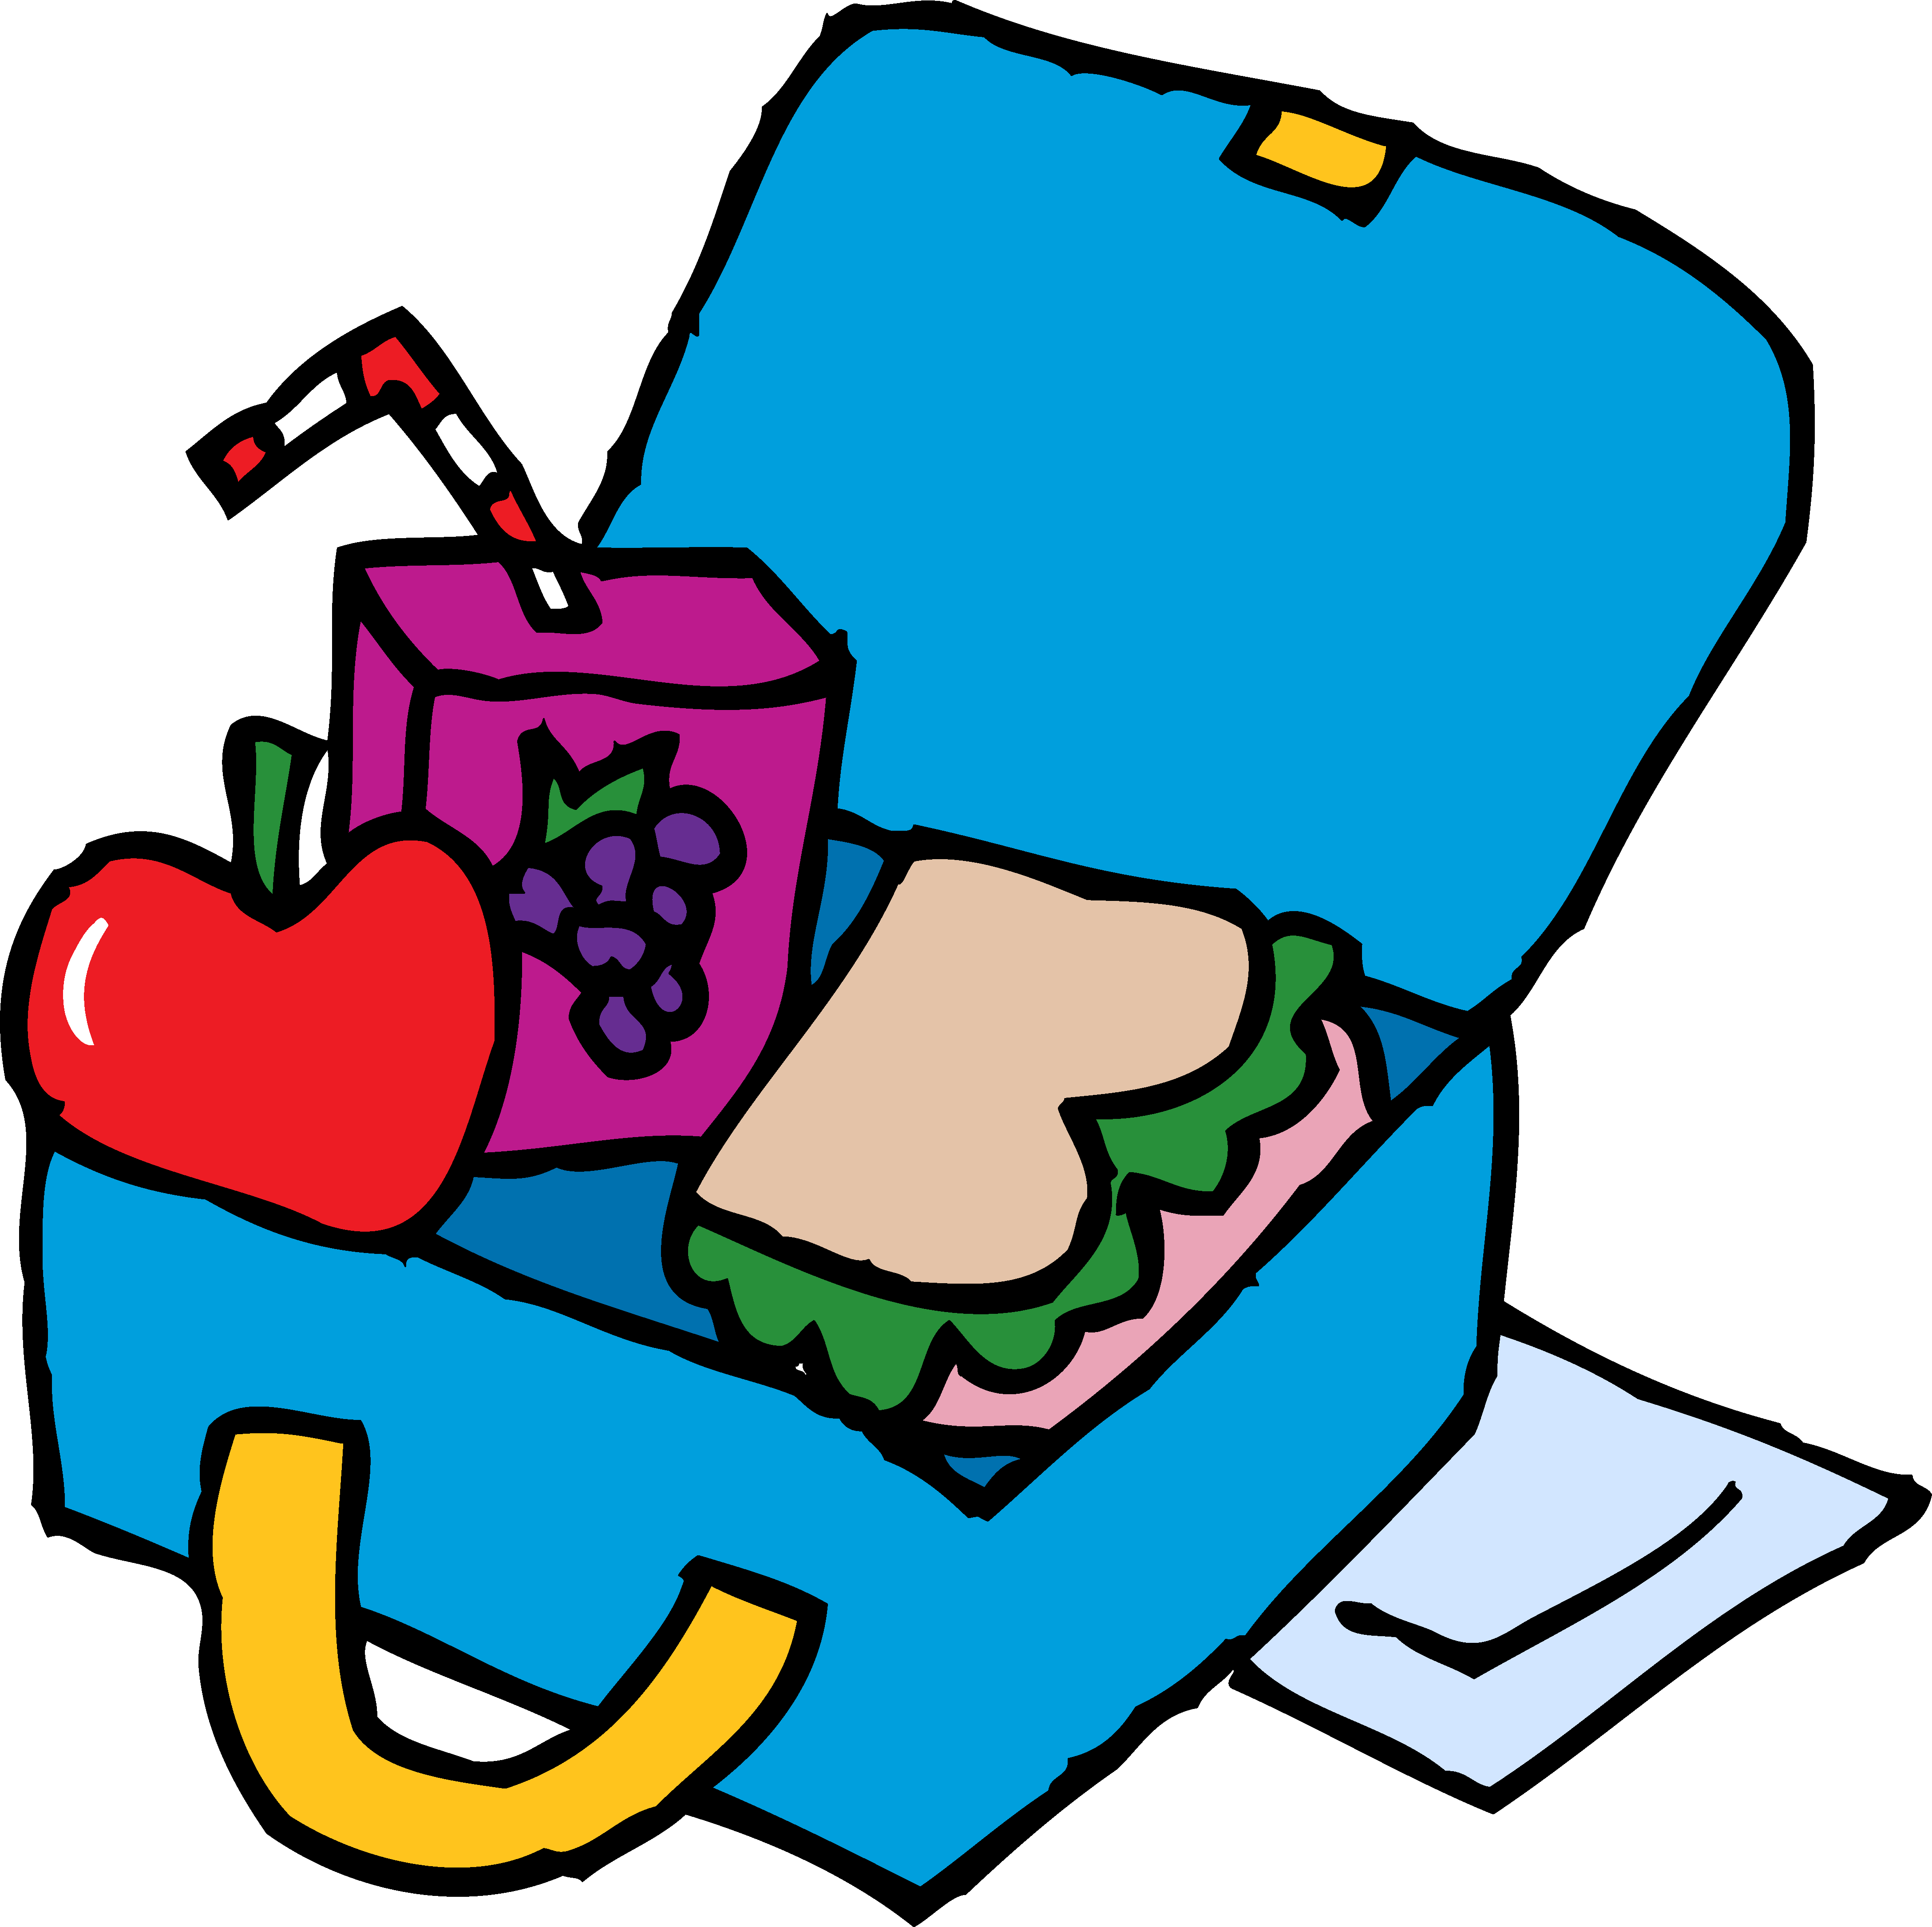 clipart lunch transparent background